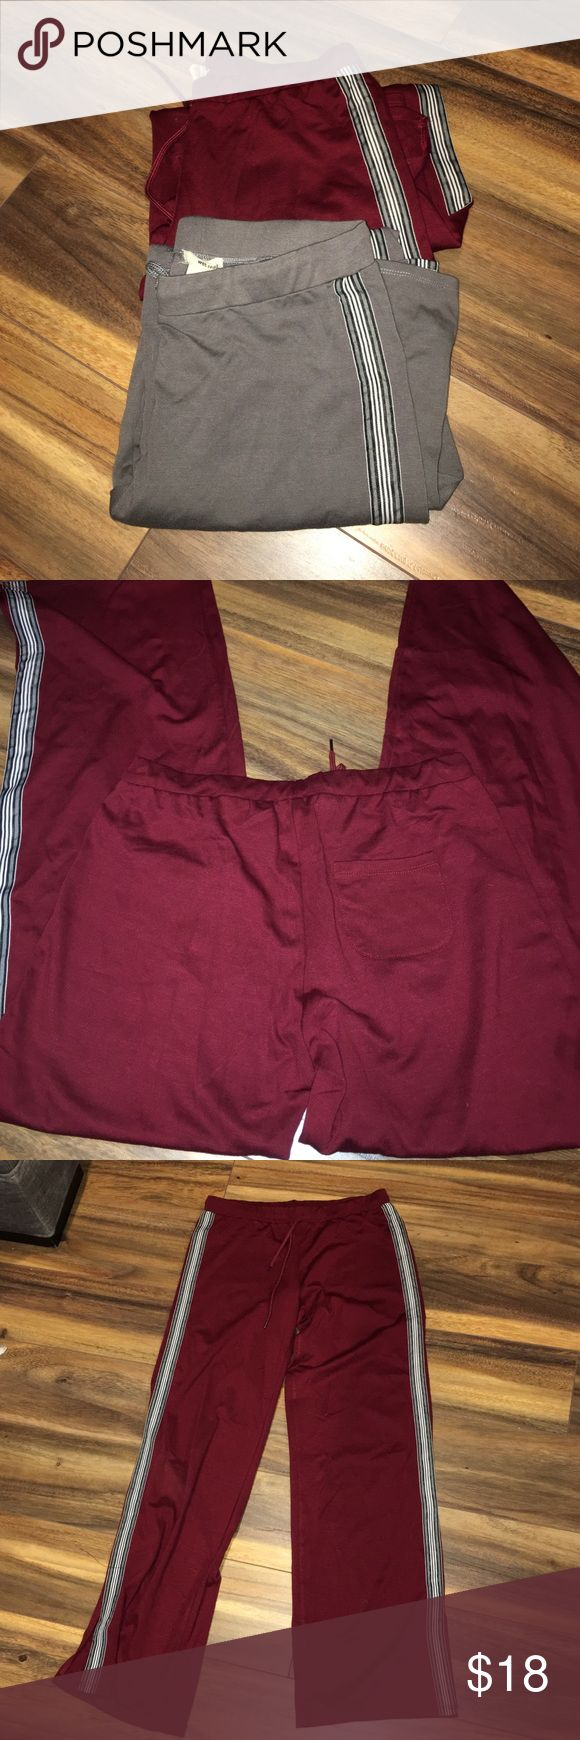 Wet Seal Sweatpants Bundle One grey and one maroon sweatpant bundle!  In good used condition! Has a back pocket and slit on the ankle/bottom of the pants. Elastic waste band. Very comfortable light material that stretches nicely. ❌If you'd like to make an offer please use the offer button. ❌I will always discount on any bundles.  ❌I will never accept any low ball offers especially if it's already priced at $5 Wet Seal Pants Track Pants & Joggers